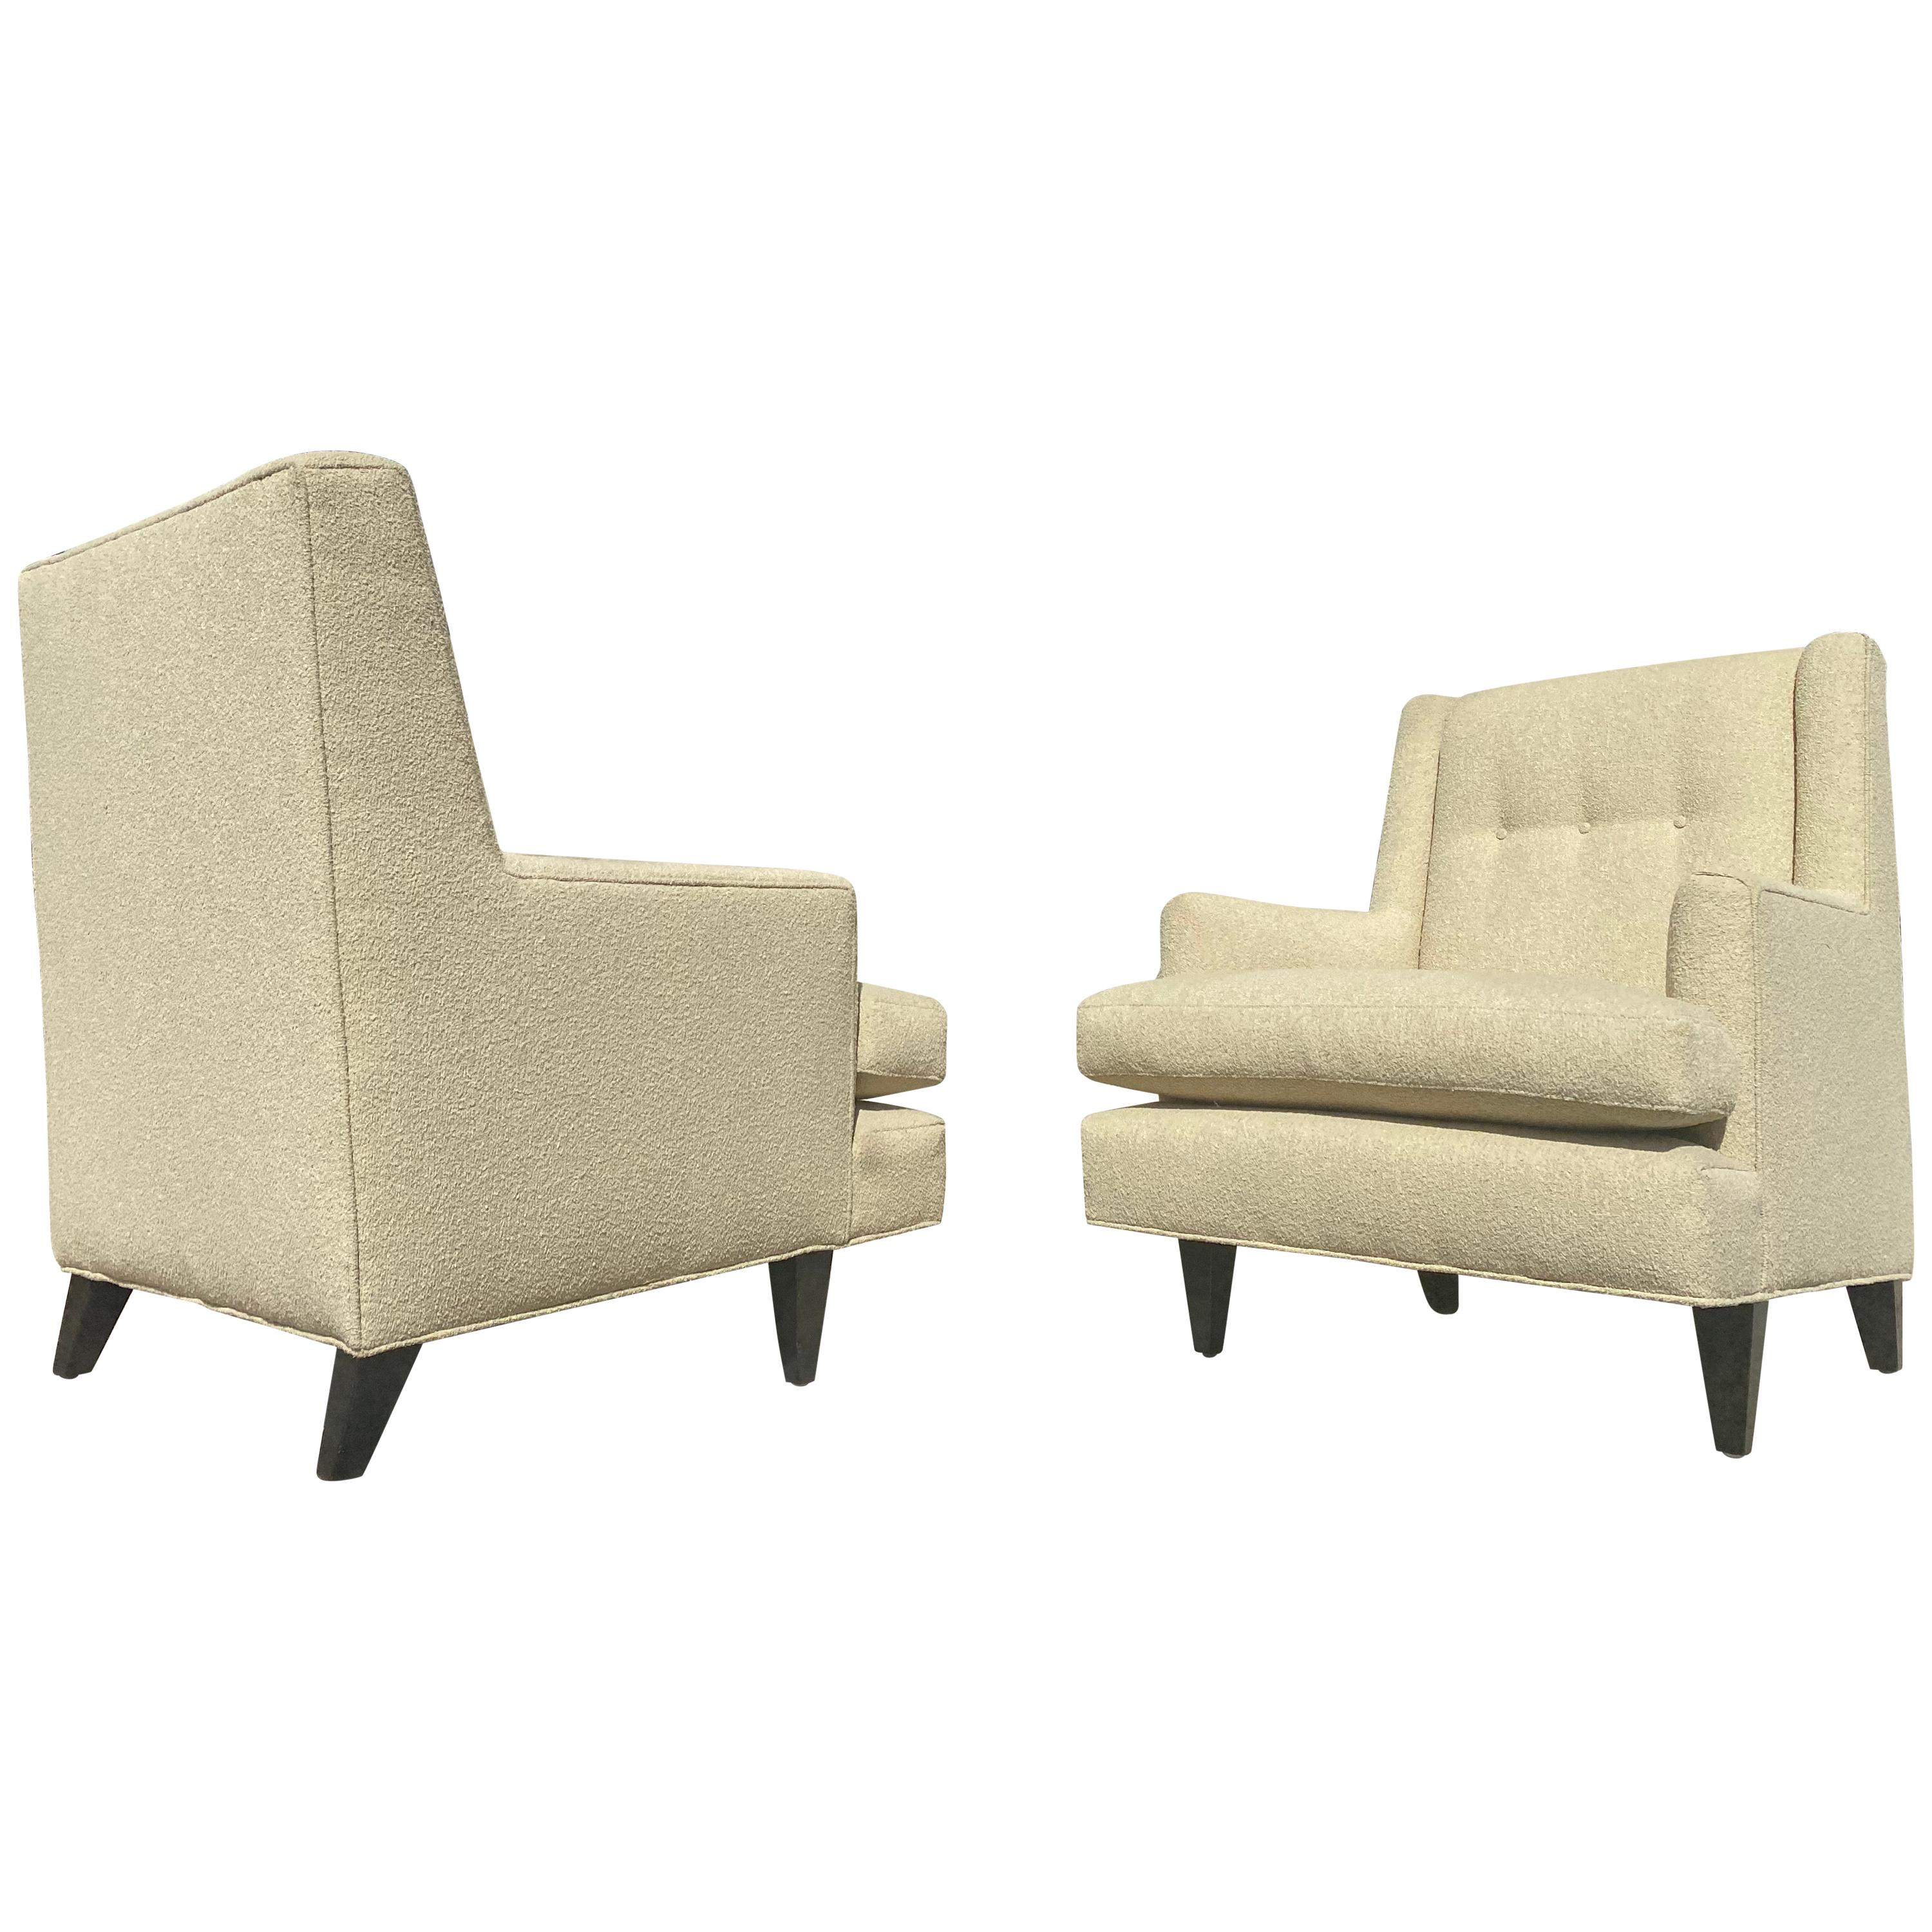 Vintage 1950s Pair of Tufted Armchairs by Edward Wormley for Dunbar Furniture